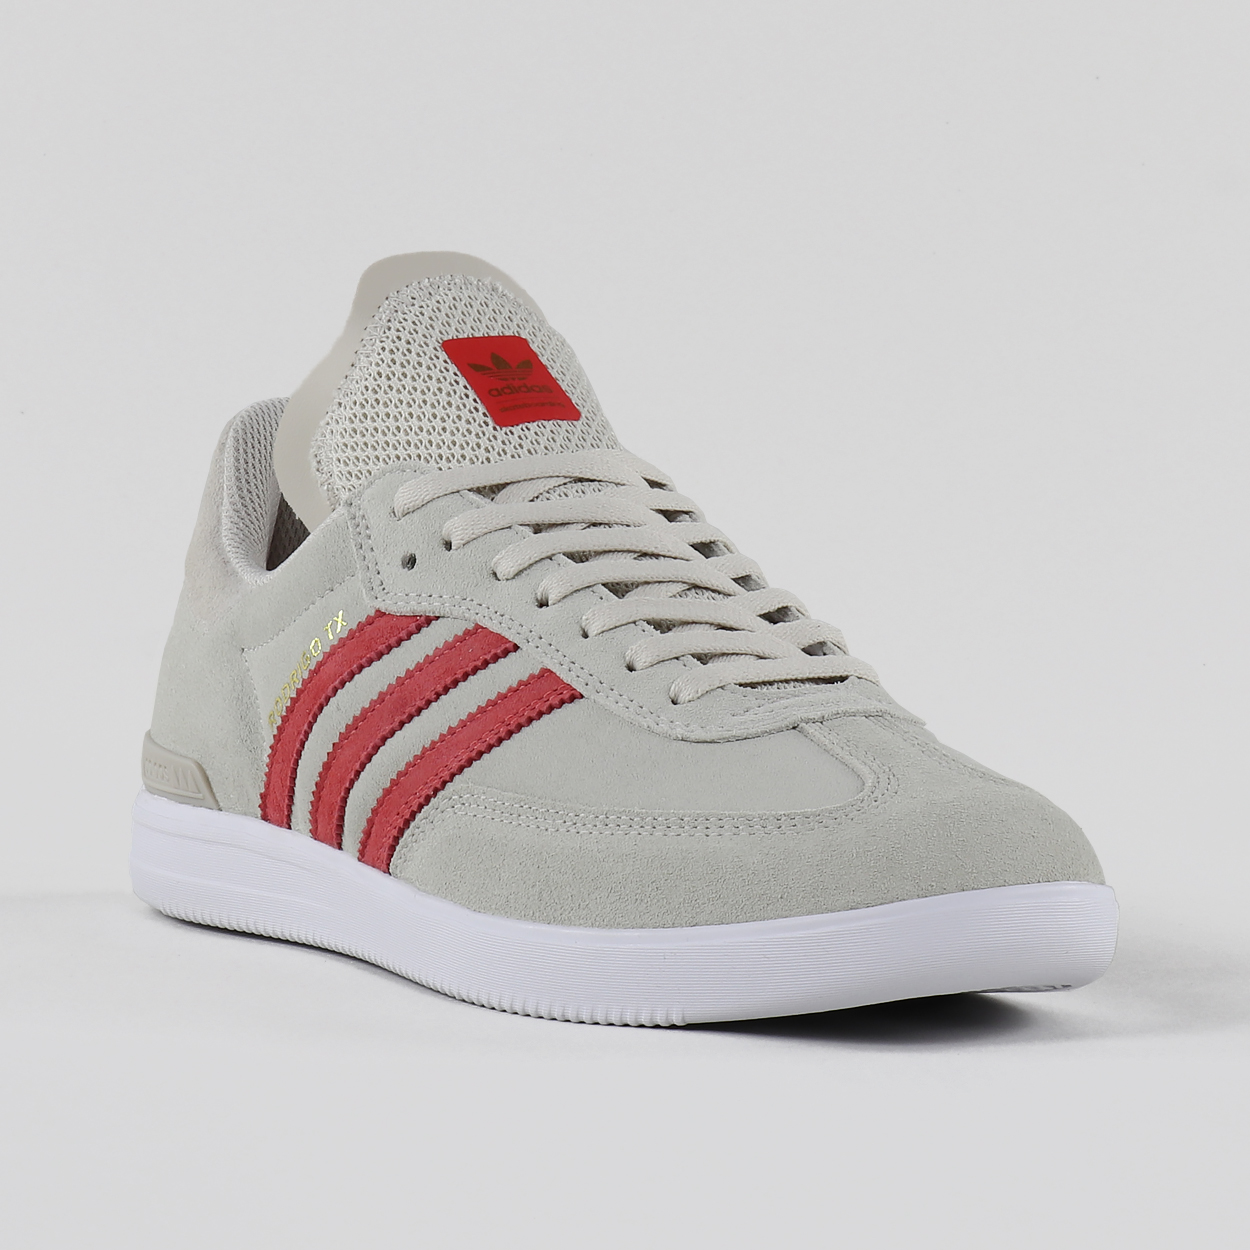 e20ce3f30c9d A fresh colourway from Rodrigo TX s signature Samba skate shoe. Strong  suede uppers meet a breathable mesh tongue